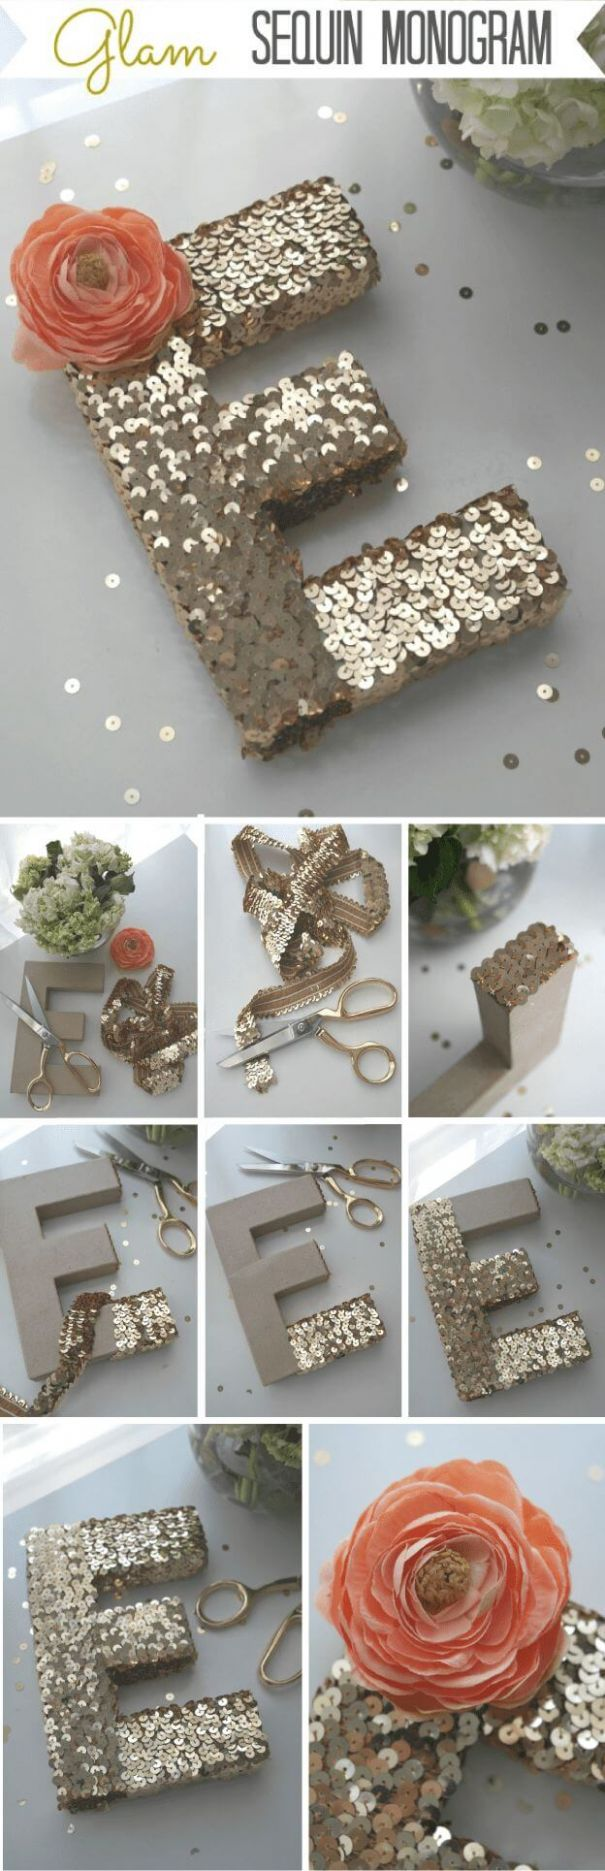 10 Best DIY Dollar Store Home Decor Ideas and Designs for 10